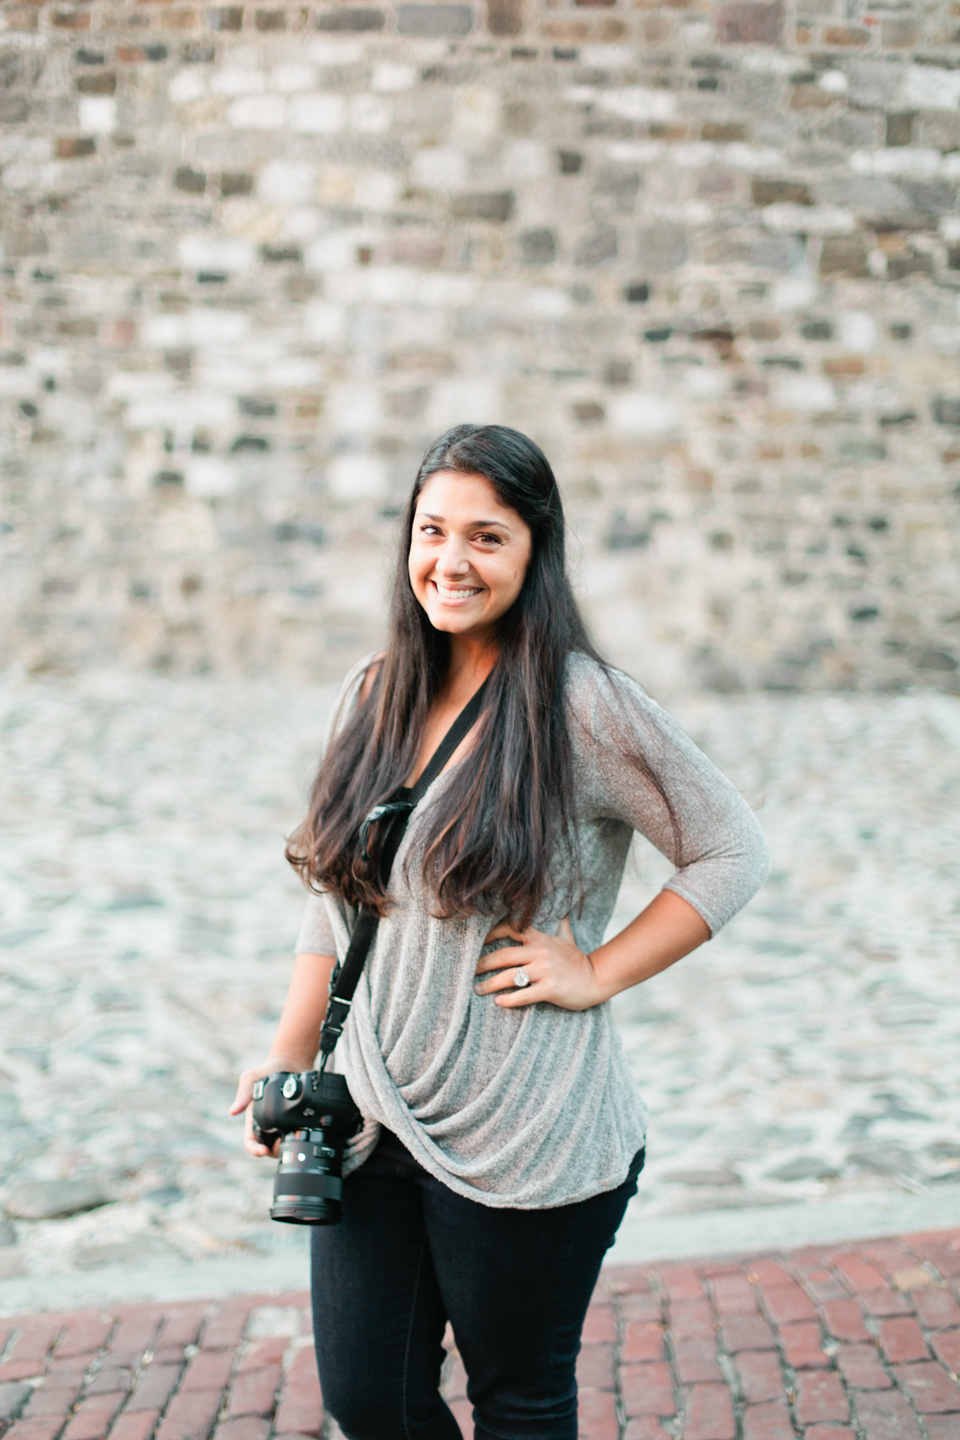 Picture of a female photographer in historic downtown Savannah, Georgia.  She is wearing a grey shirt, black pants, and is holding a Canon camera.  This is Rana of Roohi Photography.